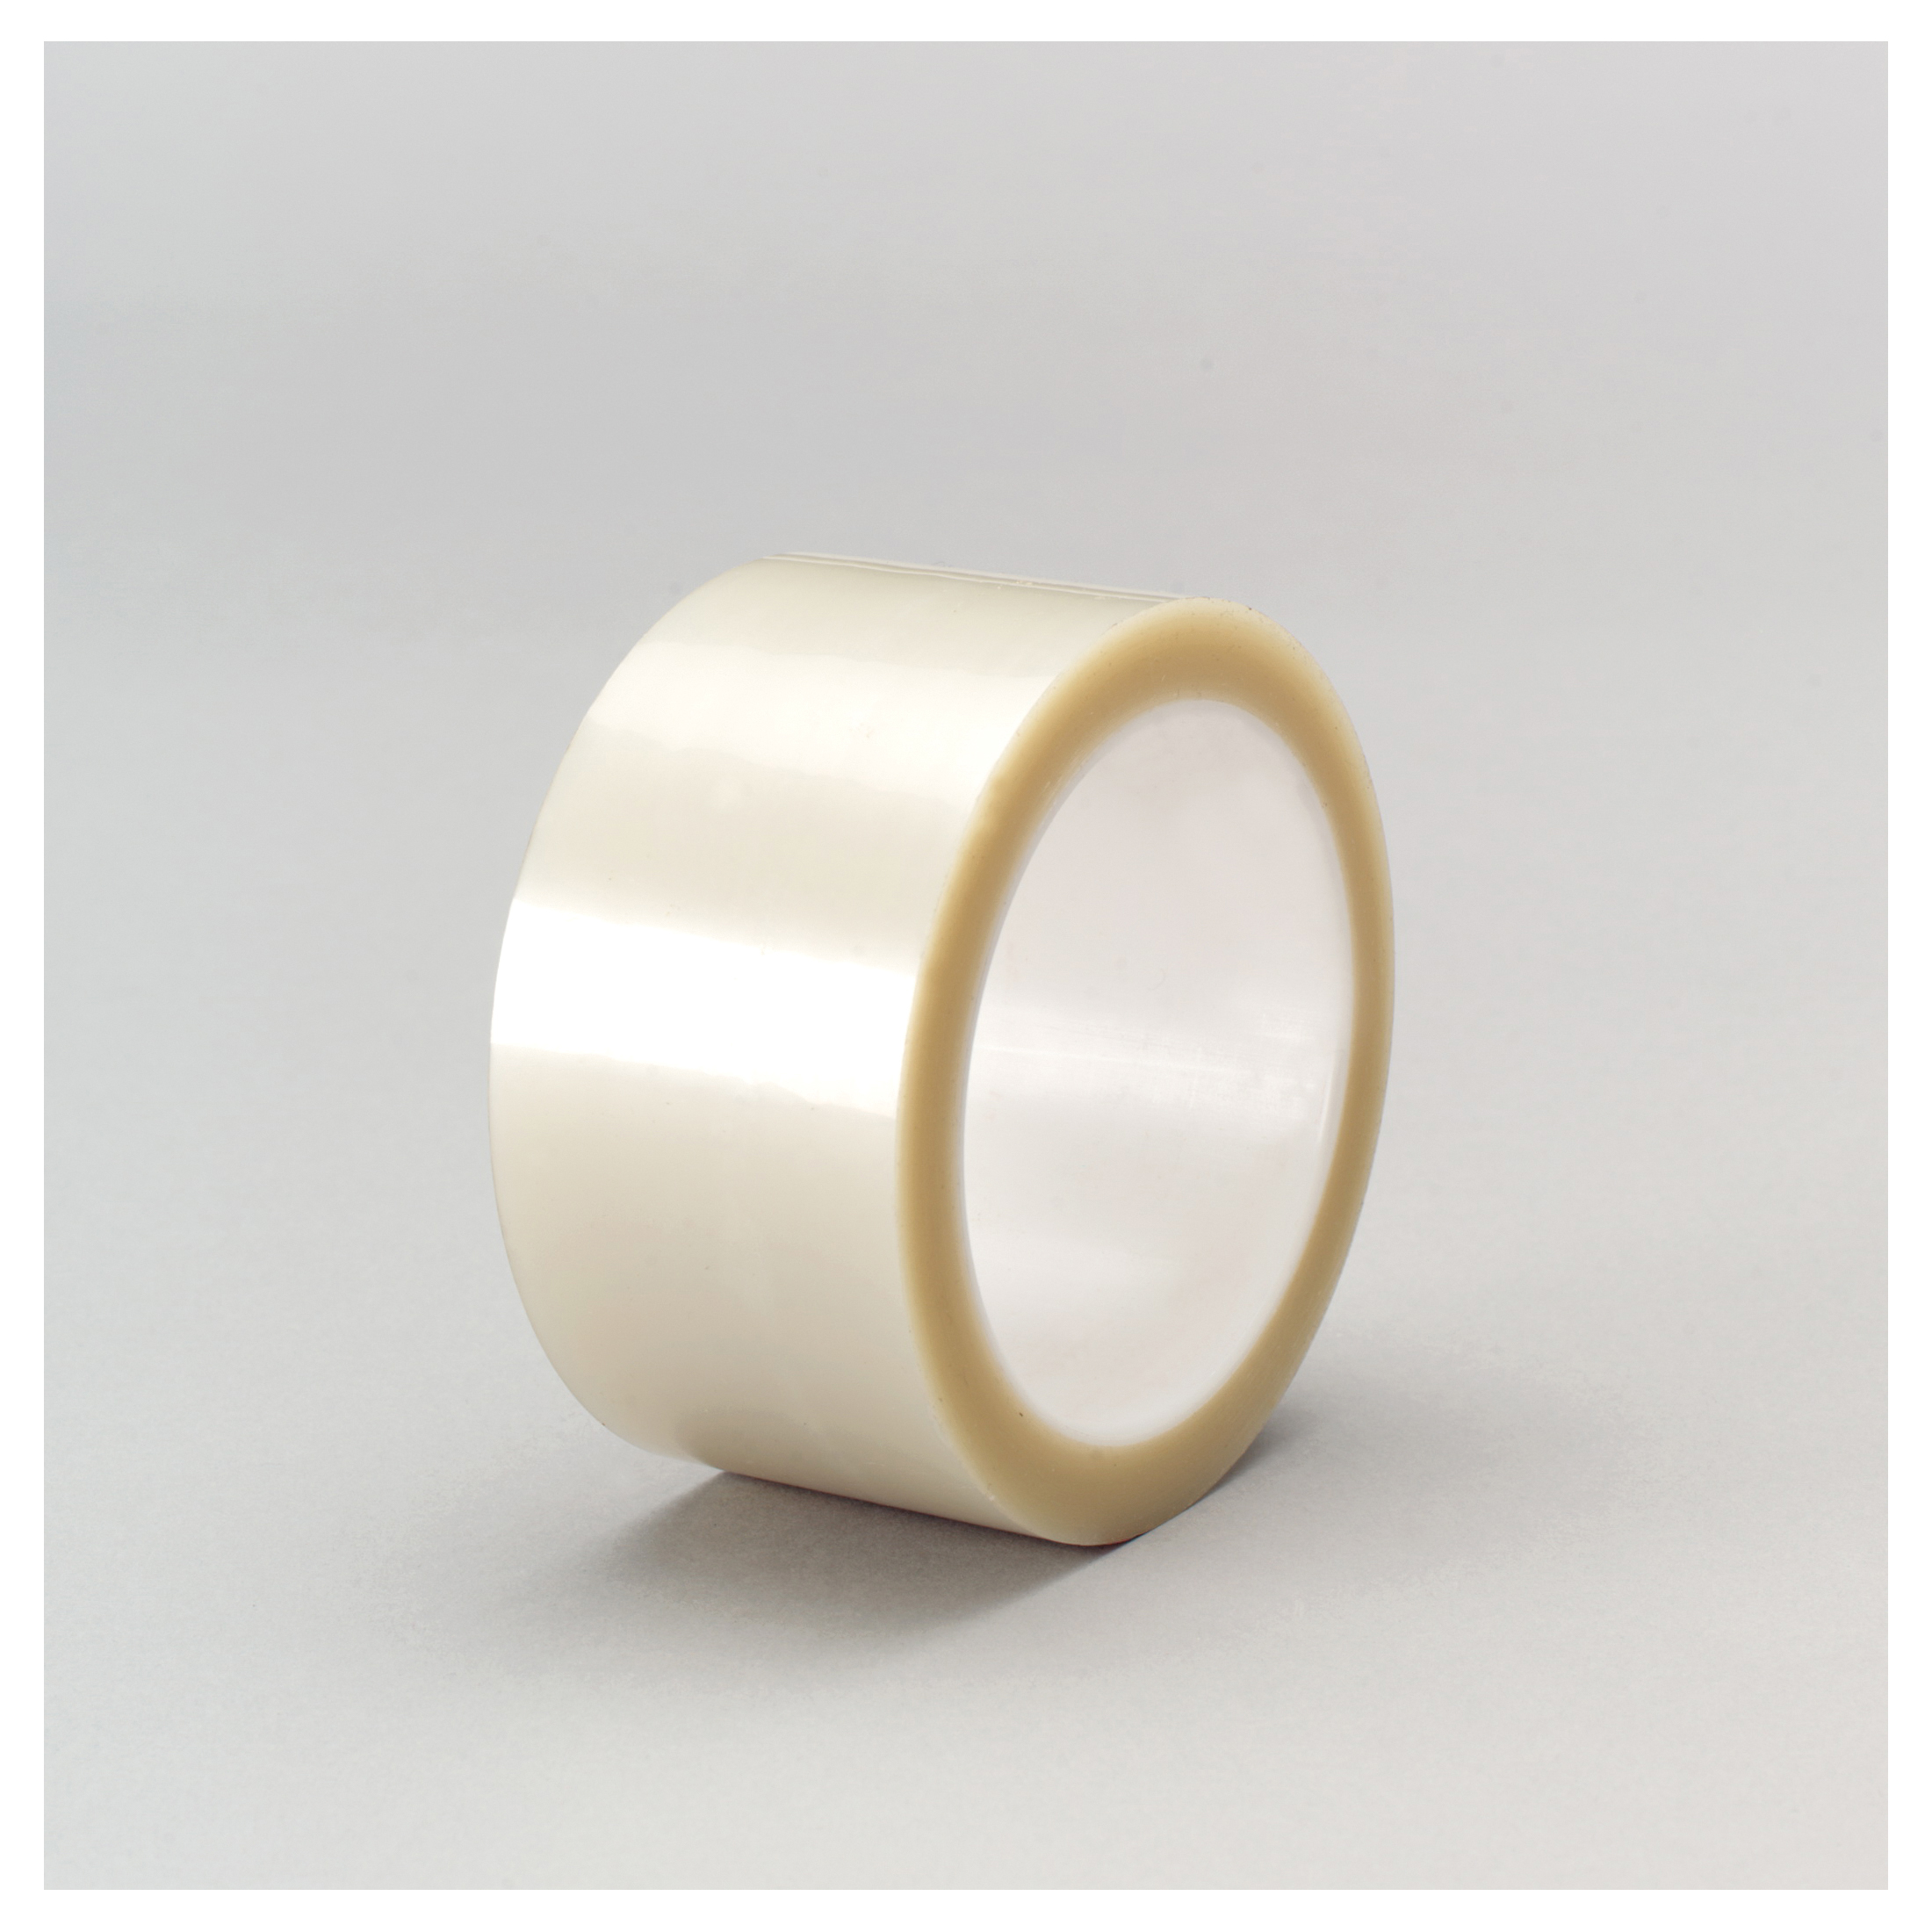 3M™ 021200-03567 Film Tape, 72 yd L x 1/2 in W, 1.9 mil THK, Acrylic Adhesive, Polyester Backing, Transparent